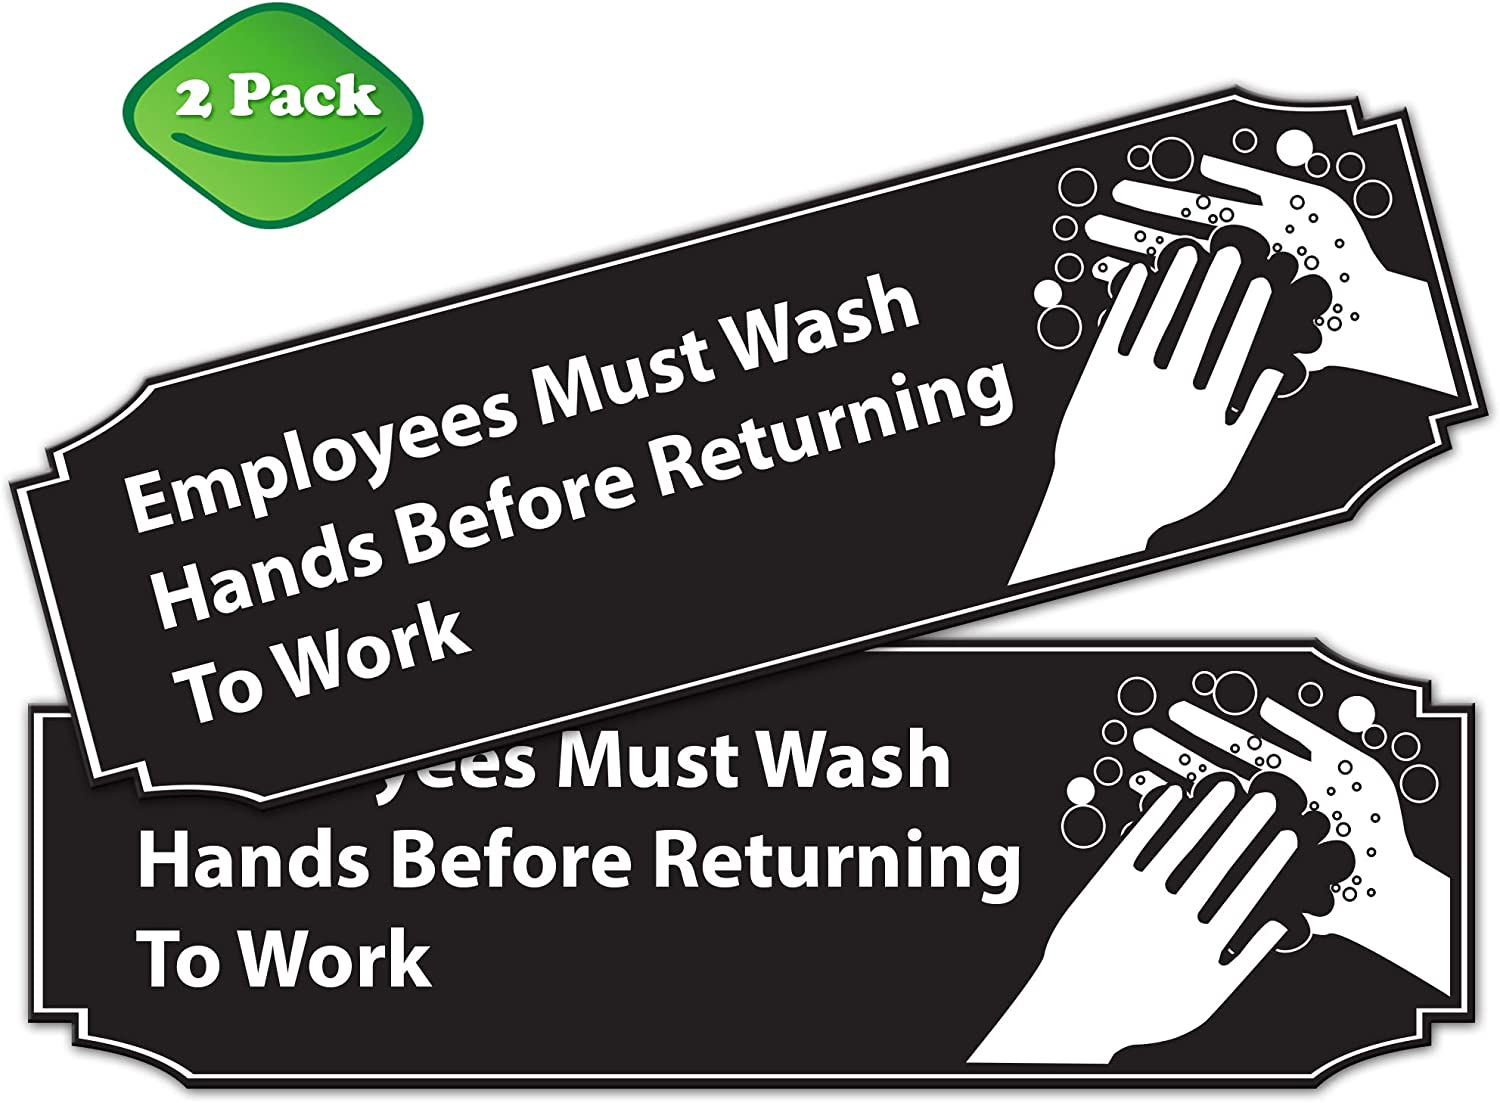 """Employees Must Wash Hands Before Returning to Work Sign White and Black Aluminum 9"""" x 3"""" • Great for for Restaurants, Salons, Hotels, Motels, Gas Stations, Rest Stops • 3M Tape on The Back"""